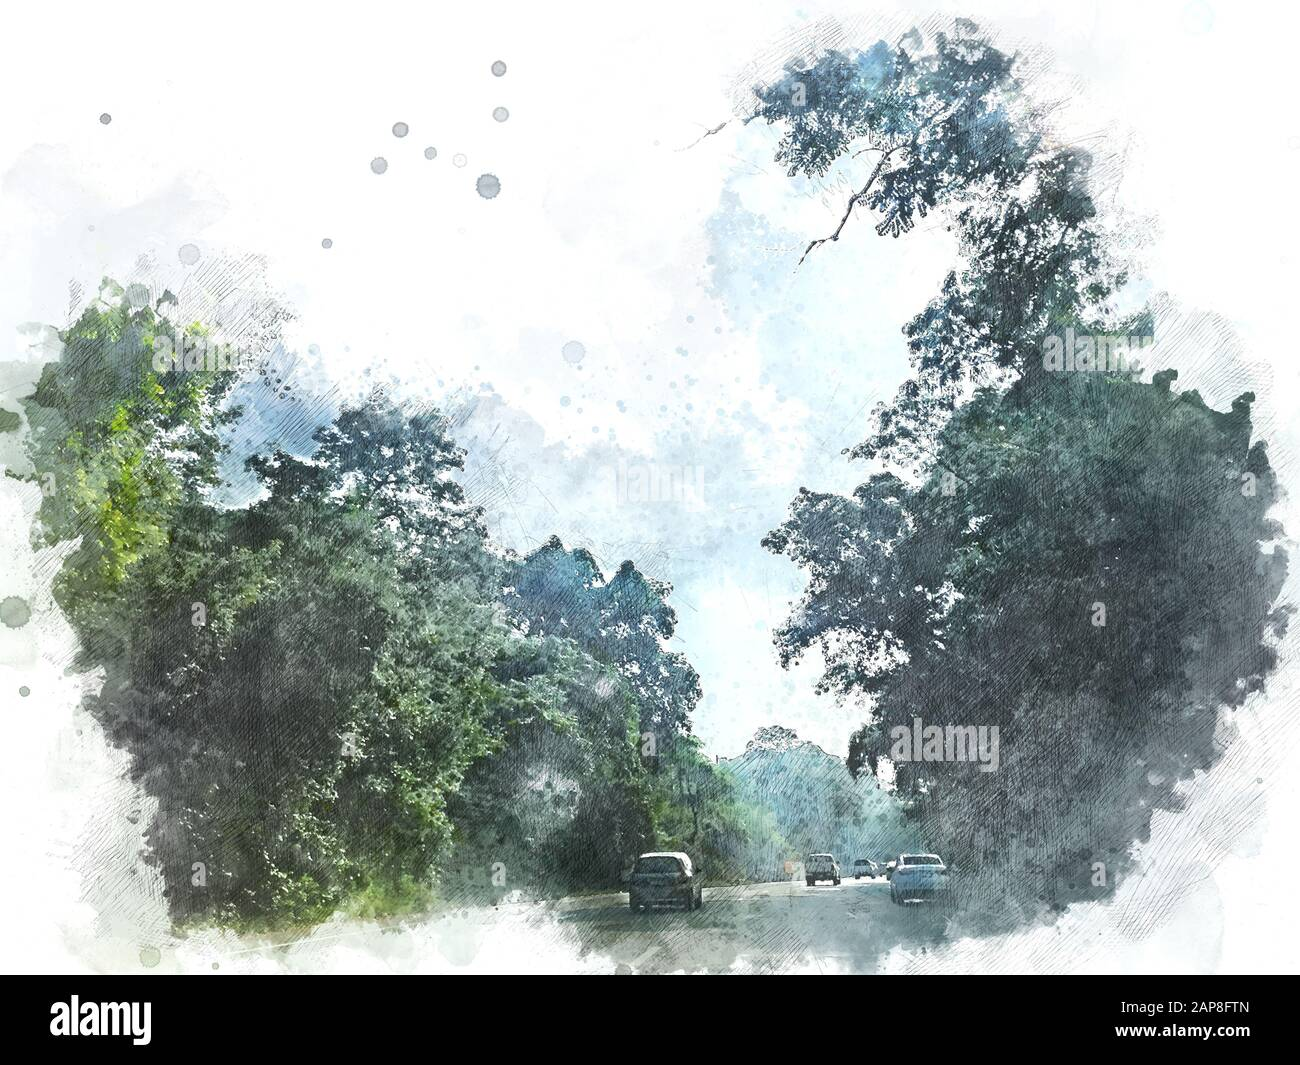 Abstract Colorful Tree Landscape And Road In Forest On Watercolor Painting Background Stock Photo Alamy